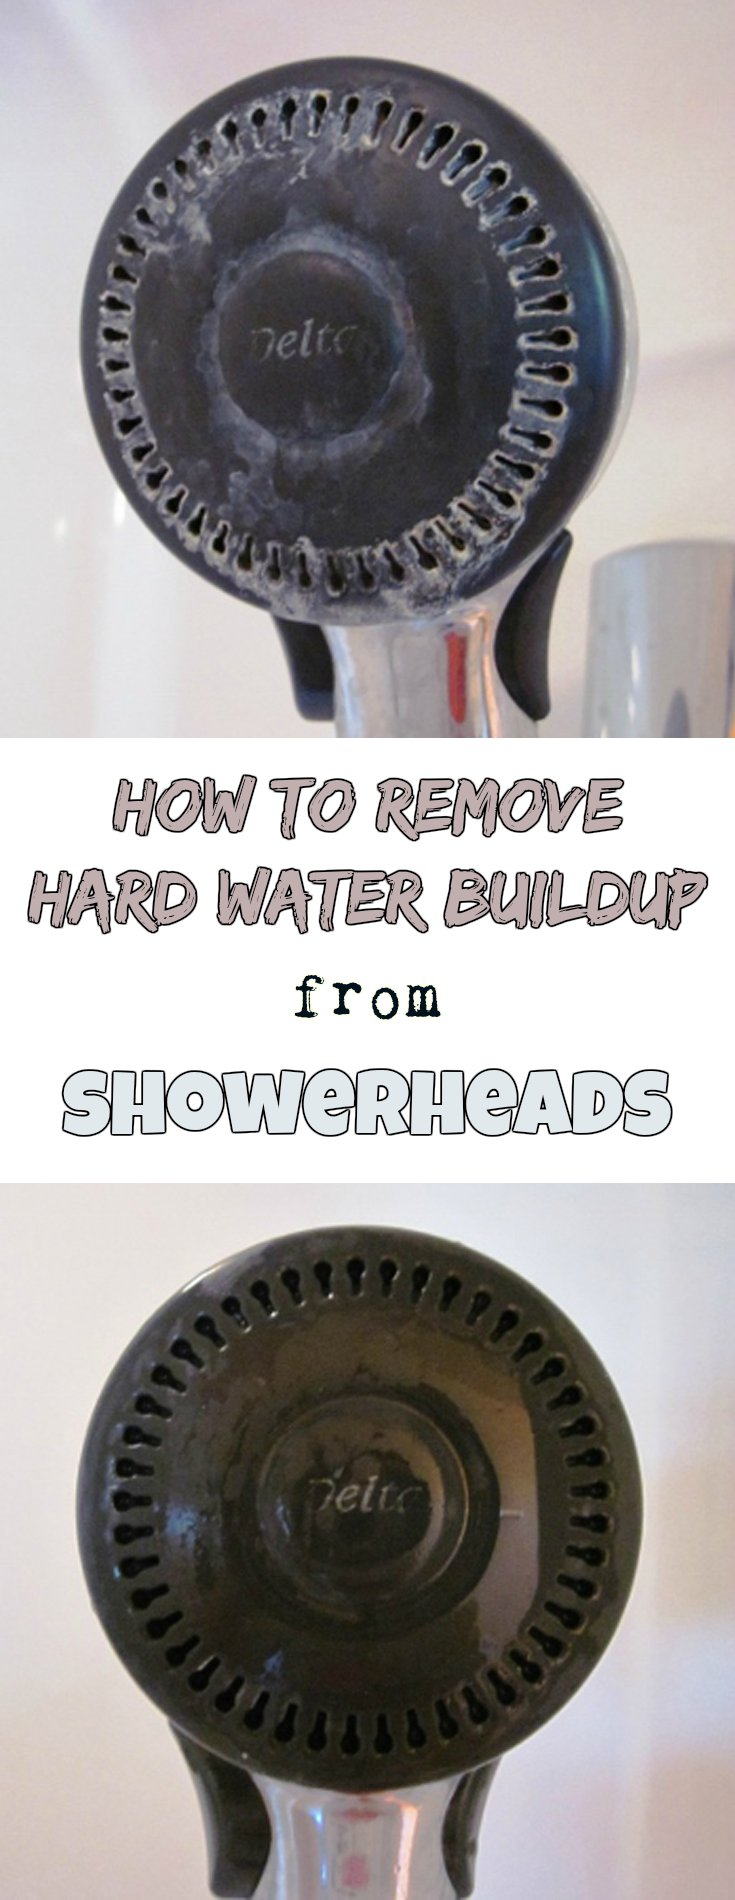 How to remove hard water buildup from showerheads ...